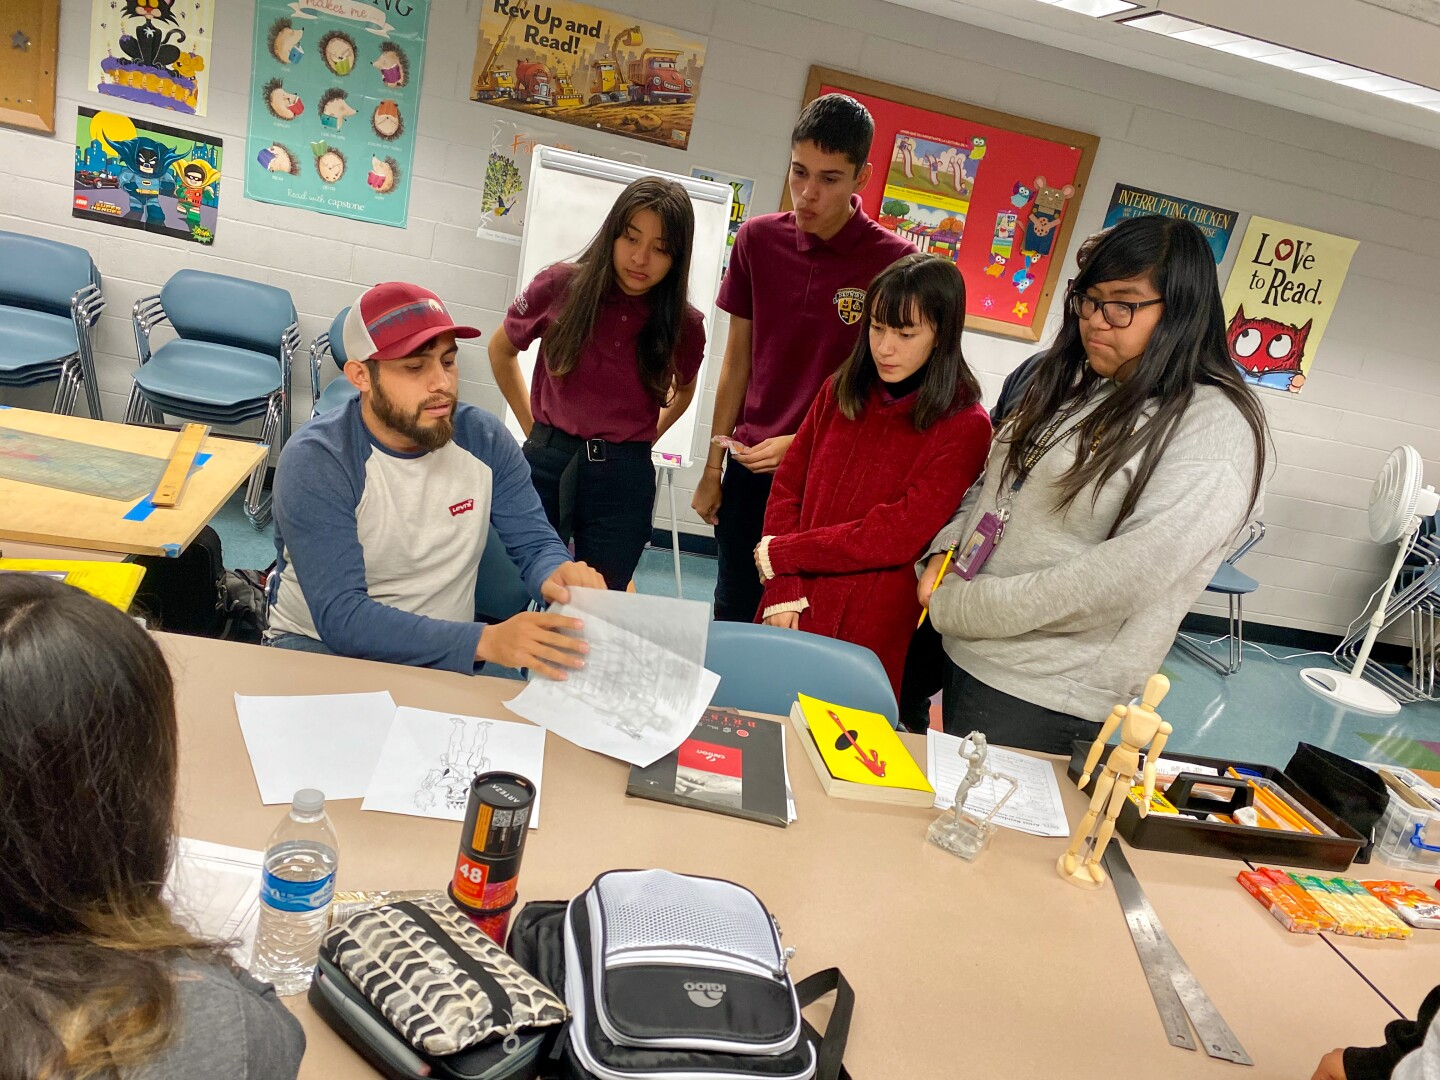 Artist Abraham Jarmillo guides a workshop about comic book coloring at a table in the Vernon - Leon H. Washington Jr. Memorial Branch Library. Students gather around him.